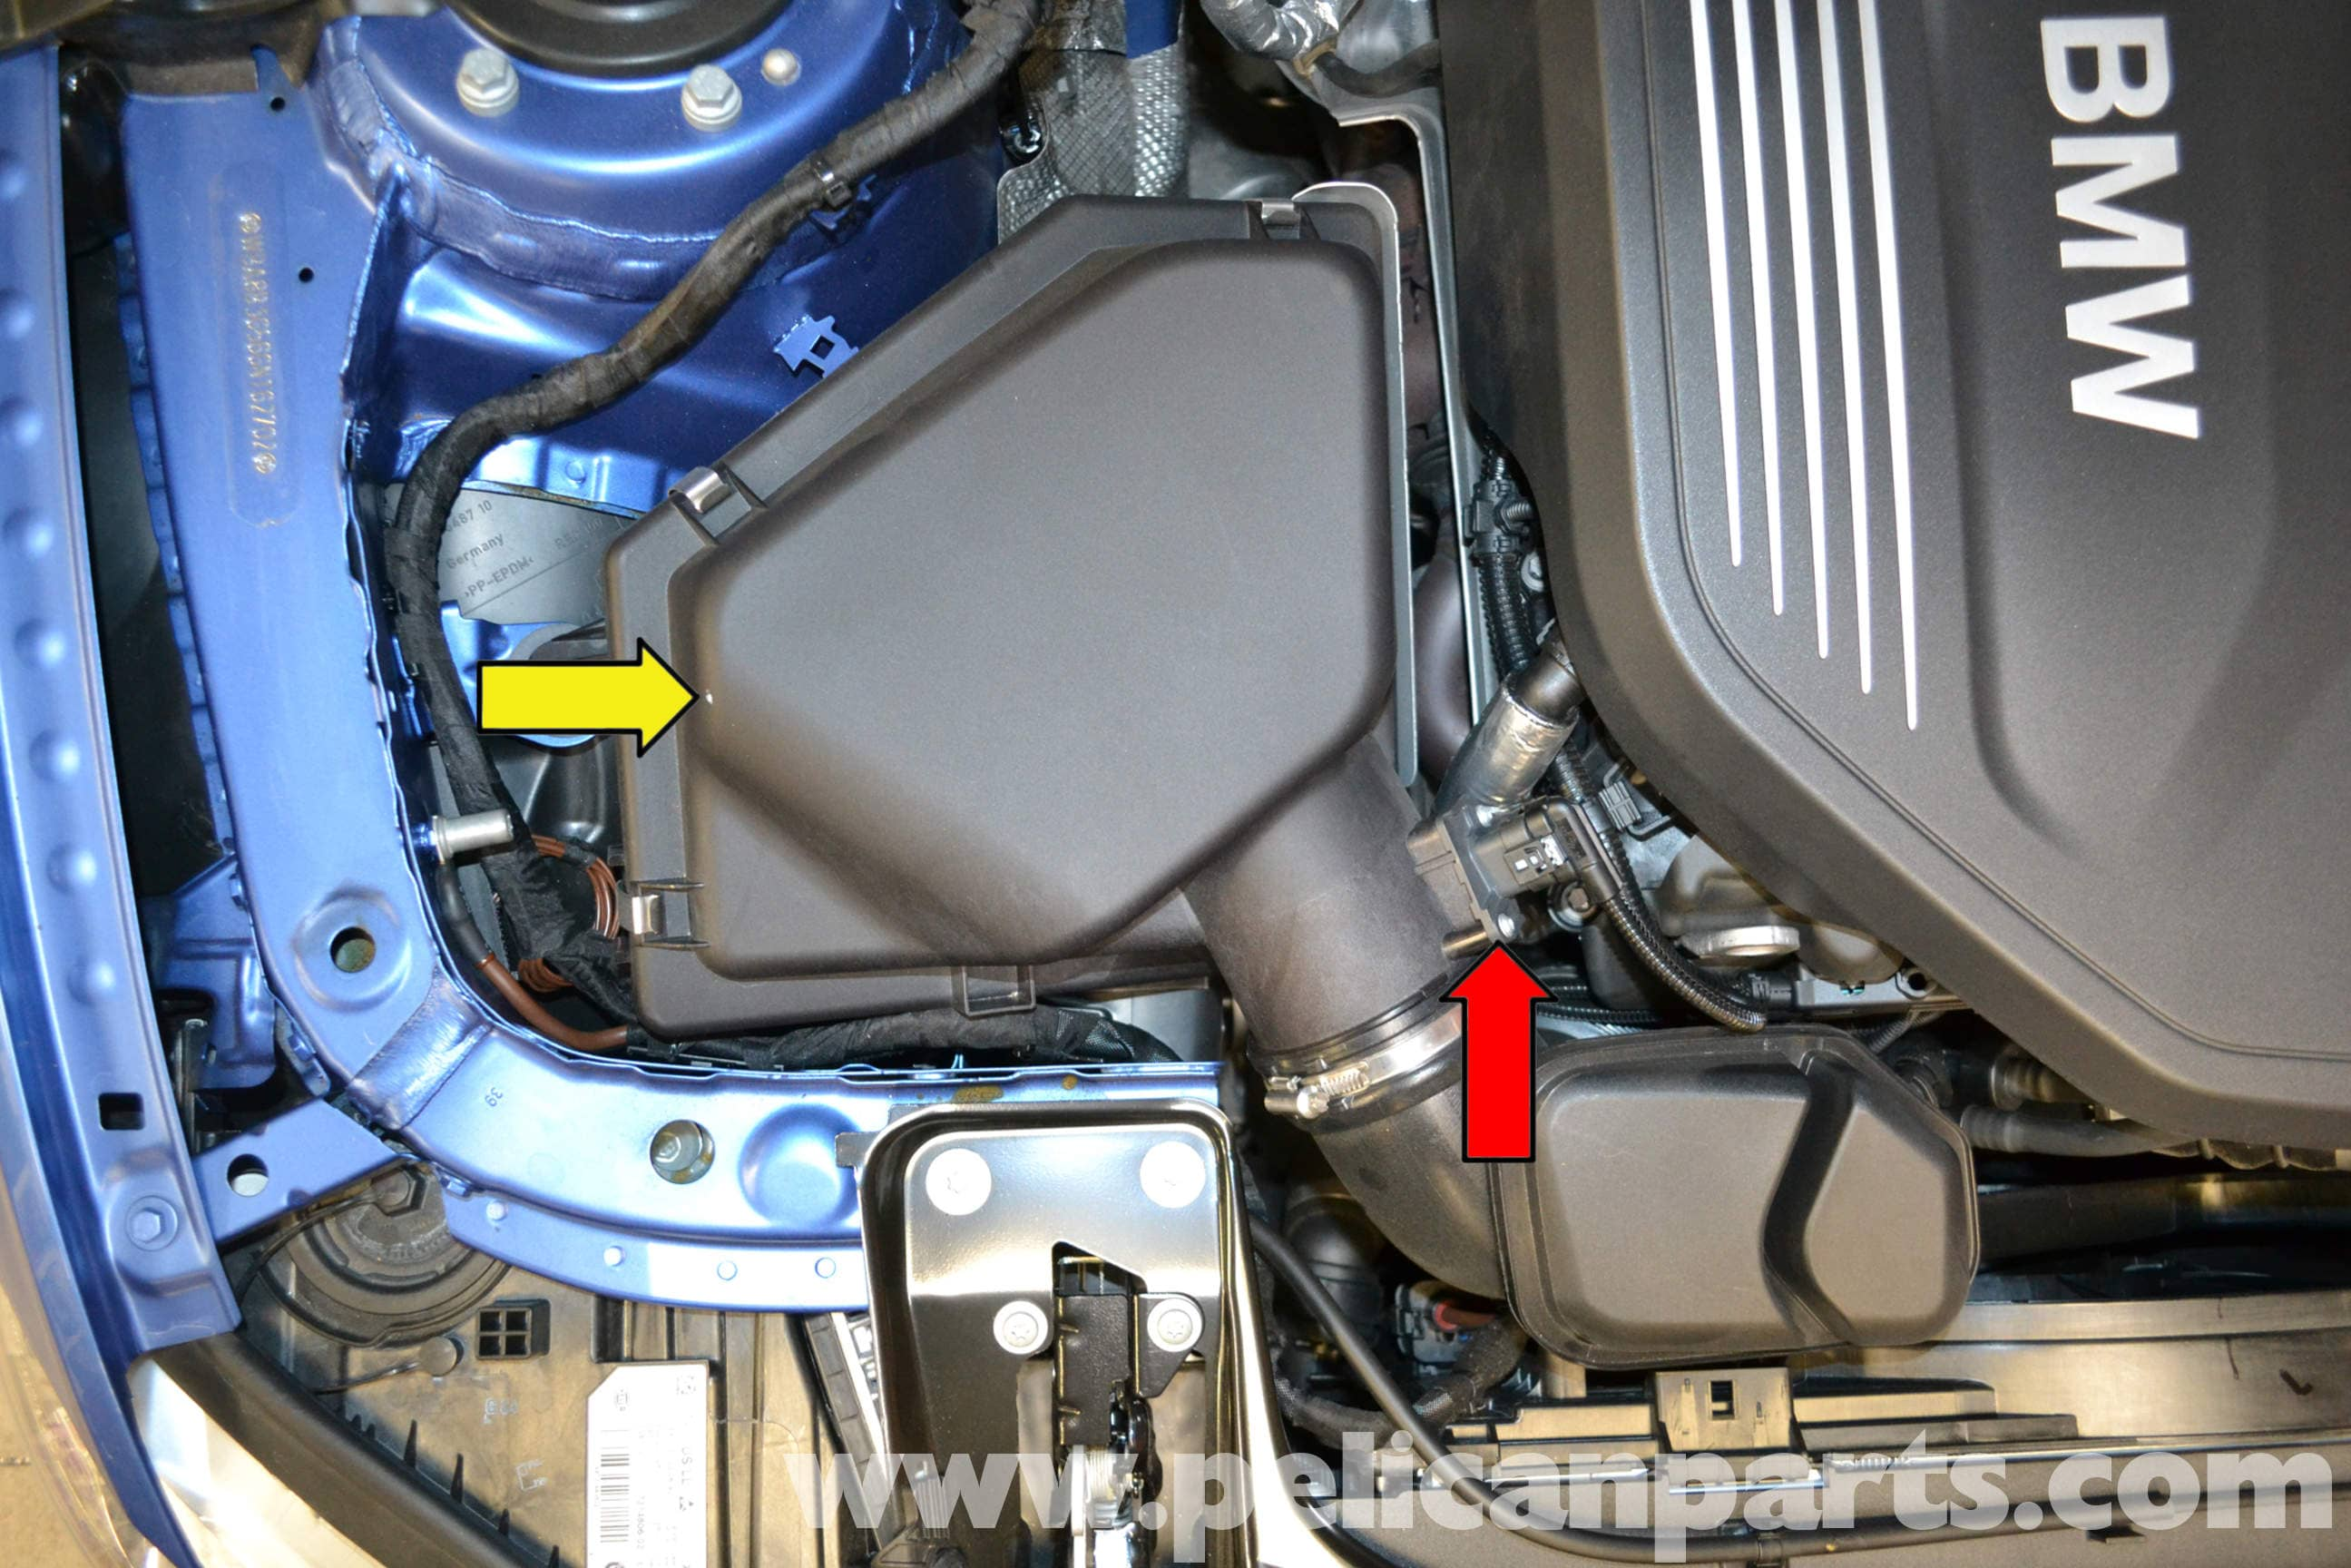 Pelican Technical Article Bmw F30 3 Series Maf Sensor Replacement E36 Wiring Diagram Large Image Extra